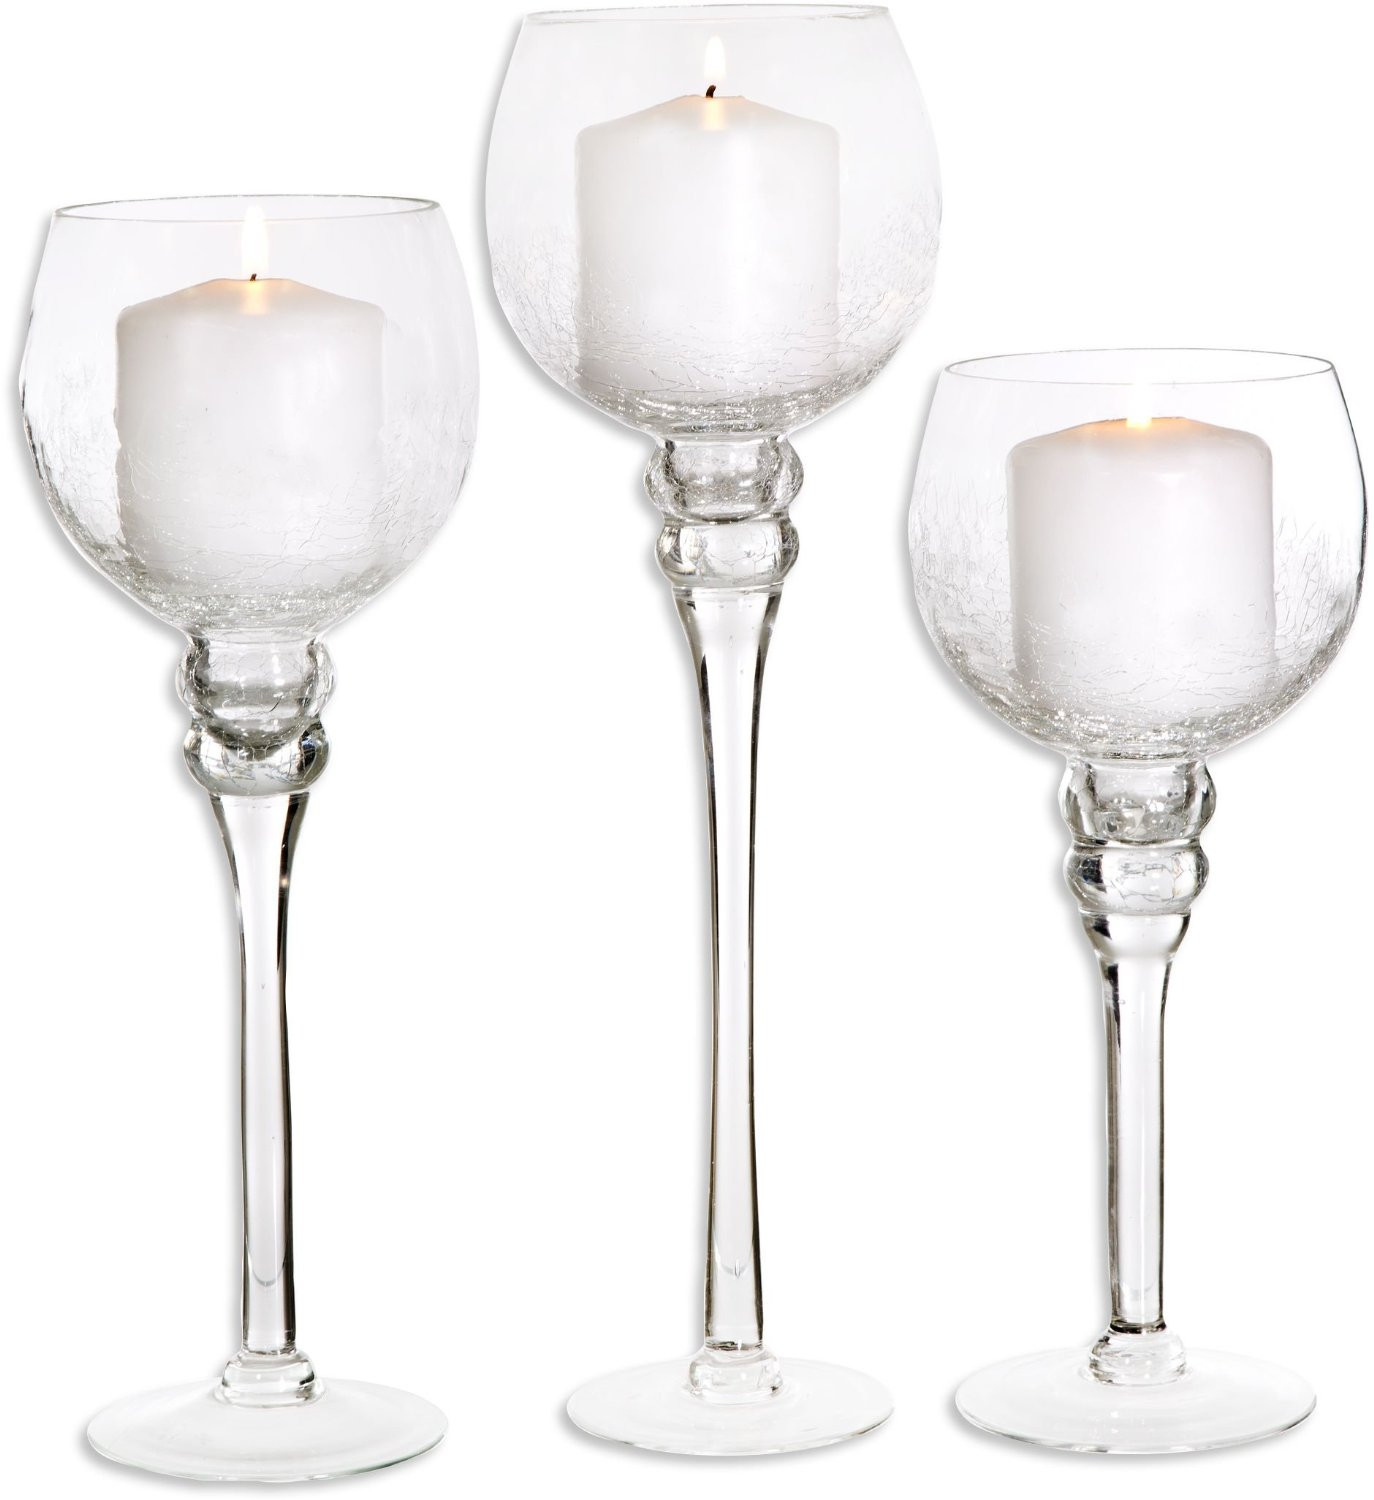 tall glass candle vases of glass goblet candle holder image antique and candle victimassist org pertaining to gl goblet candle holder image antique and victimist